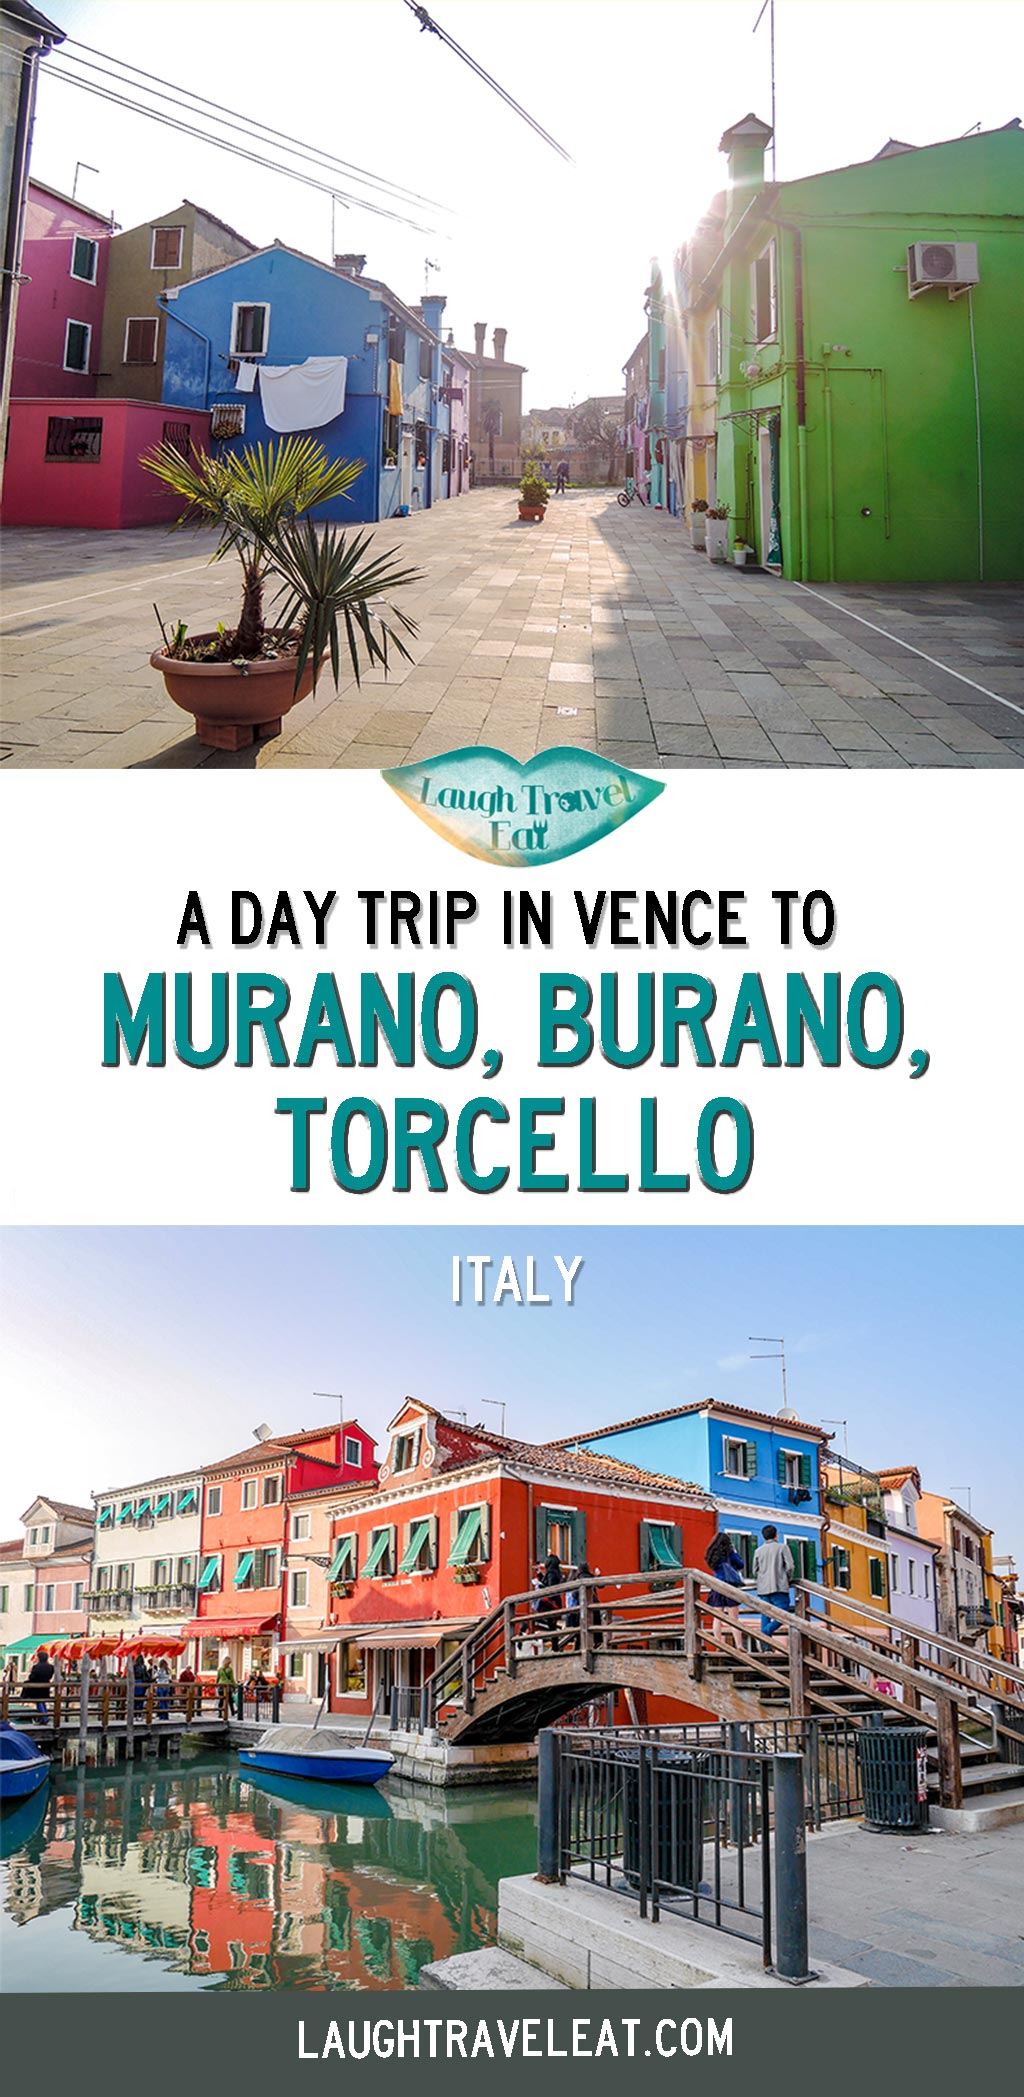 A trip to Venice isn't complete until you visit the islands. Short on time, here's our review of viator tour to Murano, Burano & Torcello so we could see it all in one day! #Murano #Burano #Torcello #Venice #Italy